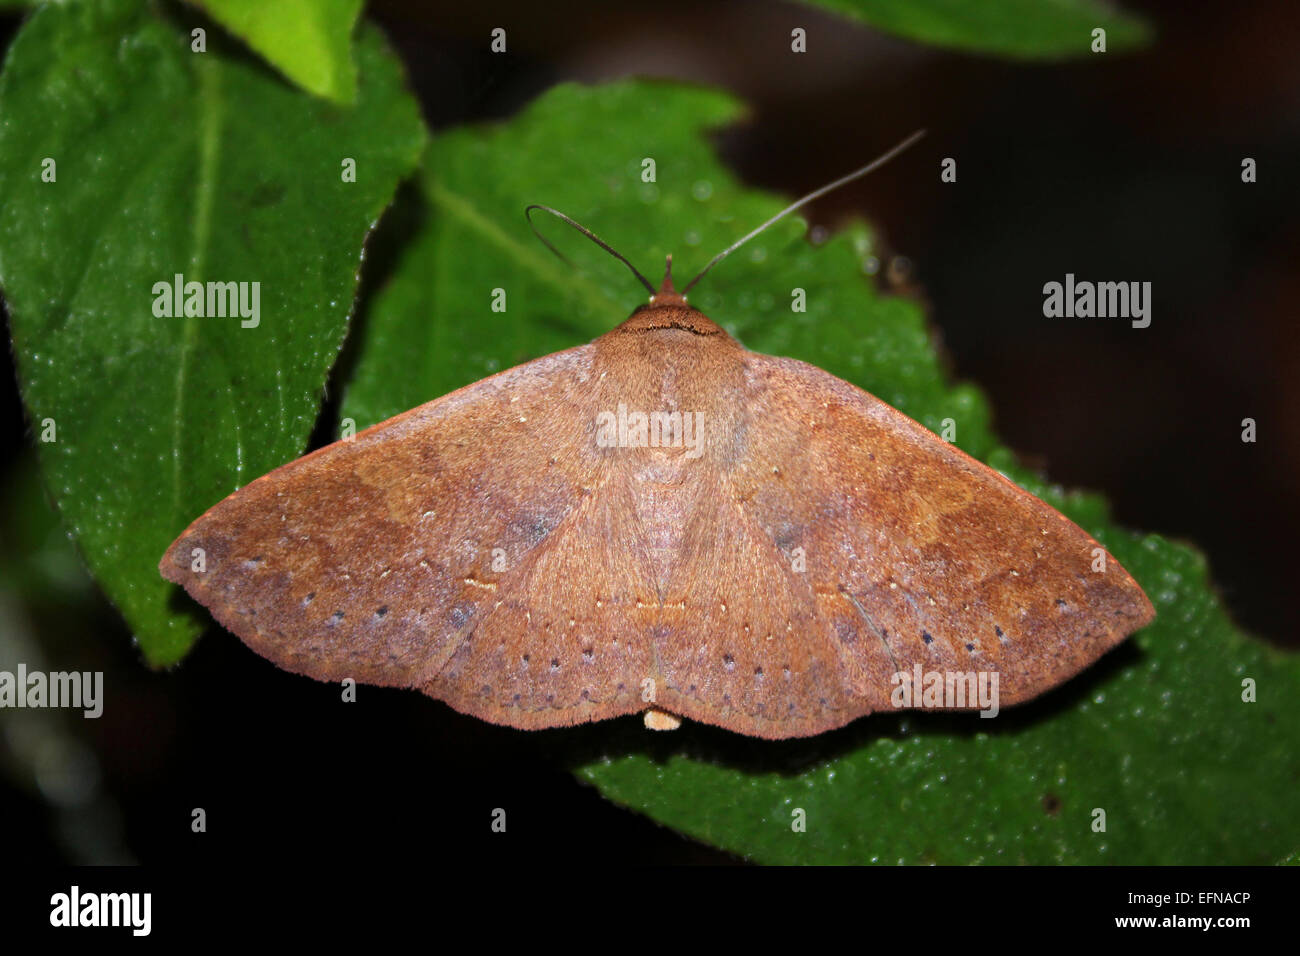 Geometrid Moth Photographed At Night In Tikal National Park, Guatemala - Stock Image